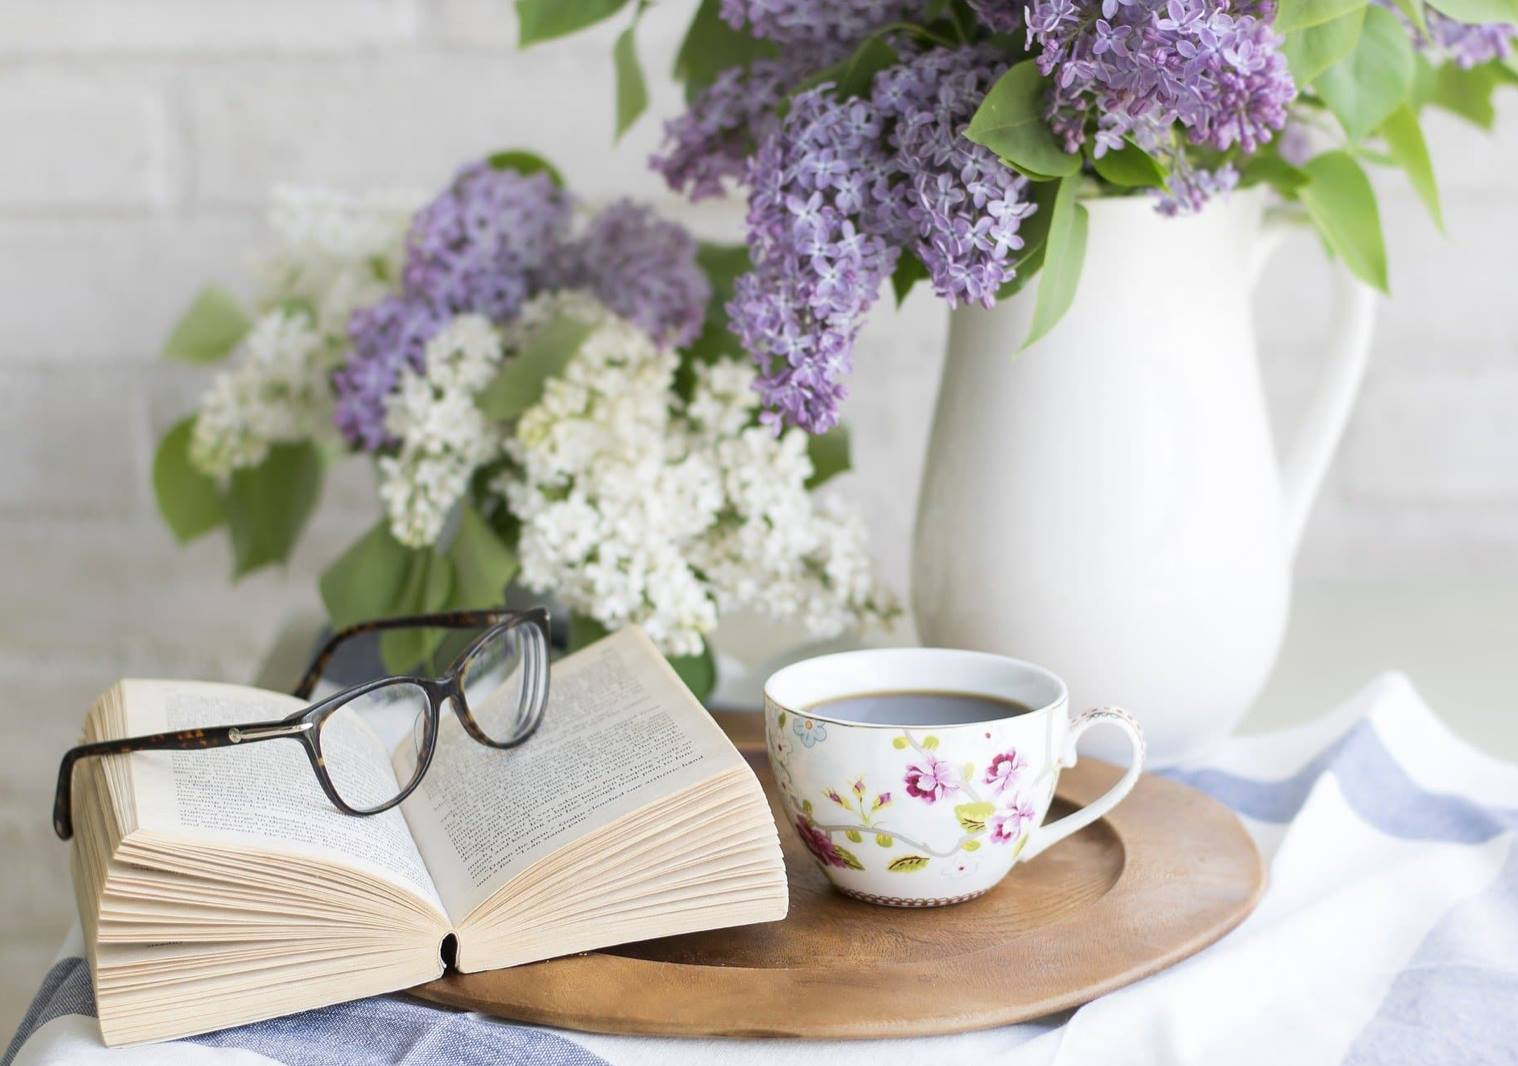 Swirl and Thread blog header (a white pitches filled with purple and white lilacs, a tea cup, glasses resting on an open book)